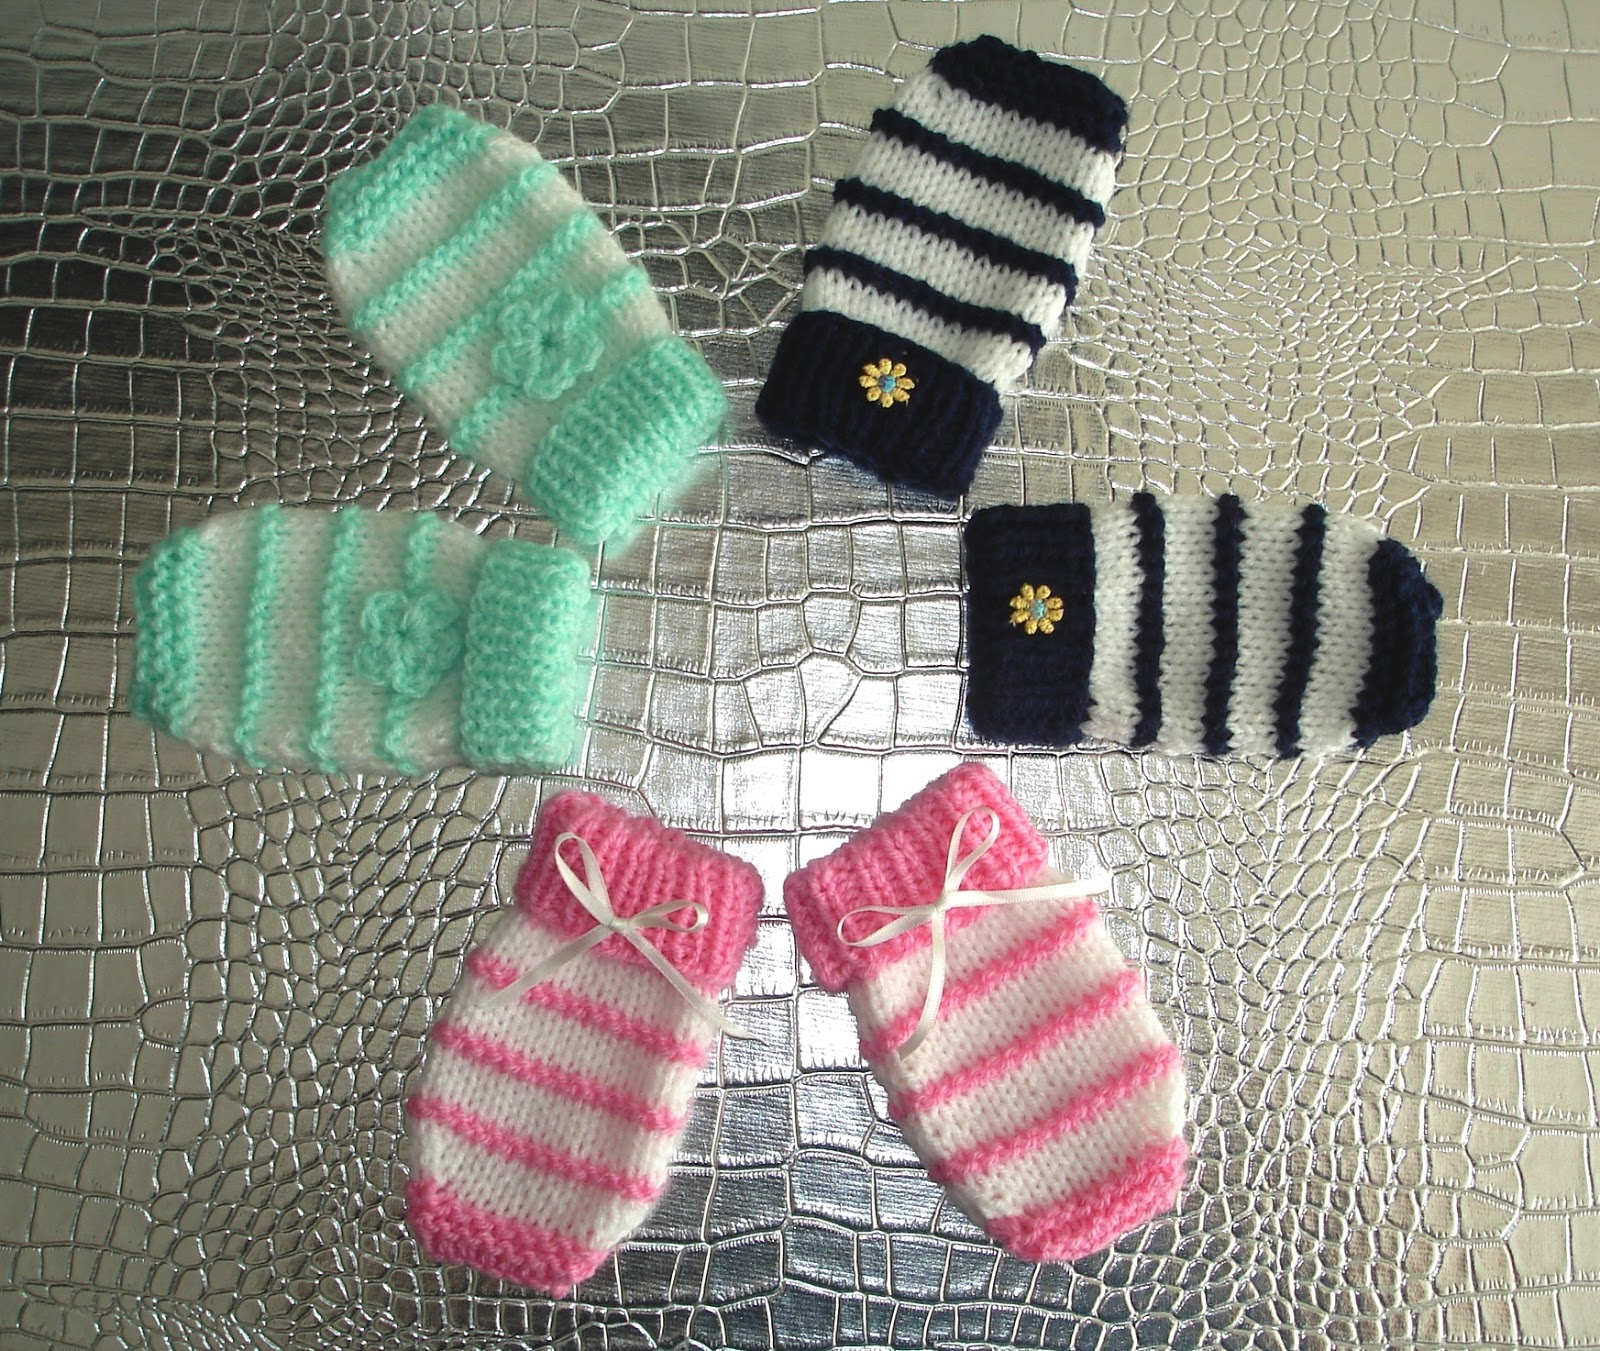 Knitting Patterns For Baby Mittens And Booties : mariannas lazy daisy days: Garter Stitch Ridge Baby Mittens